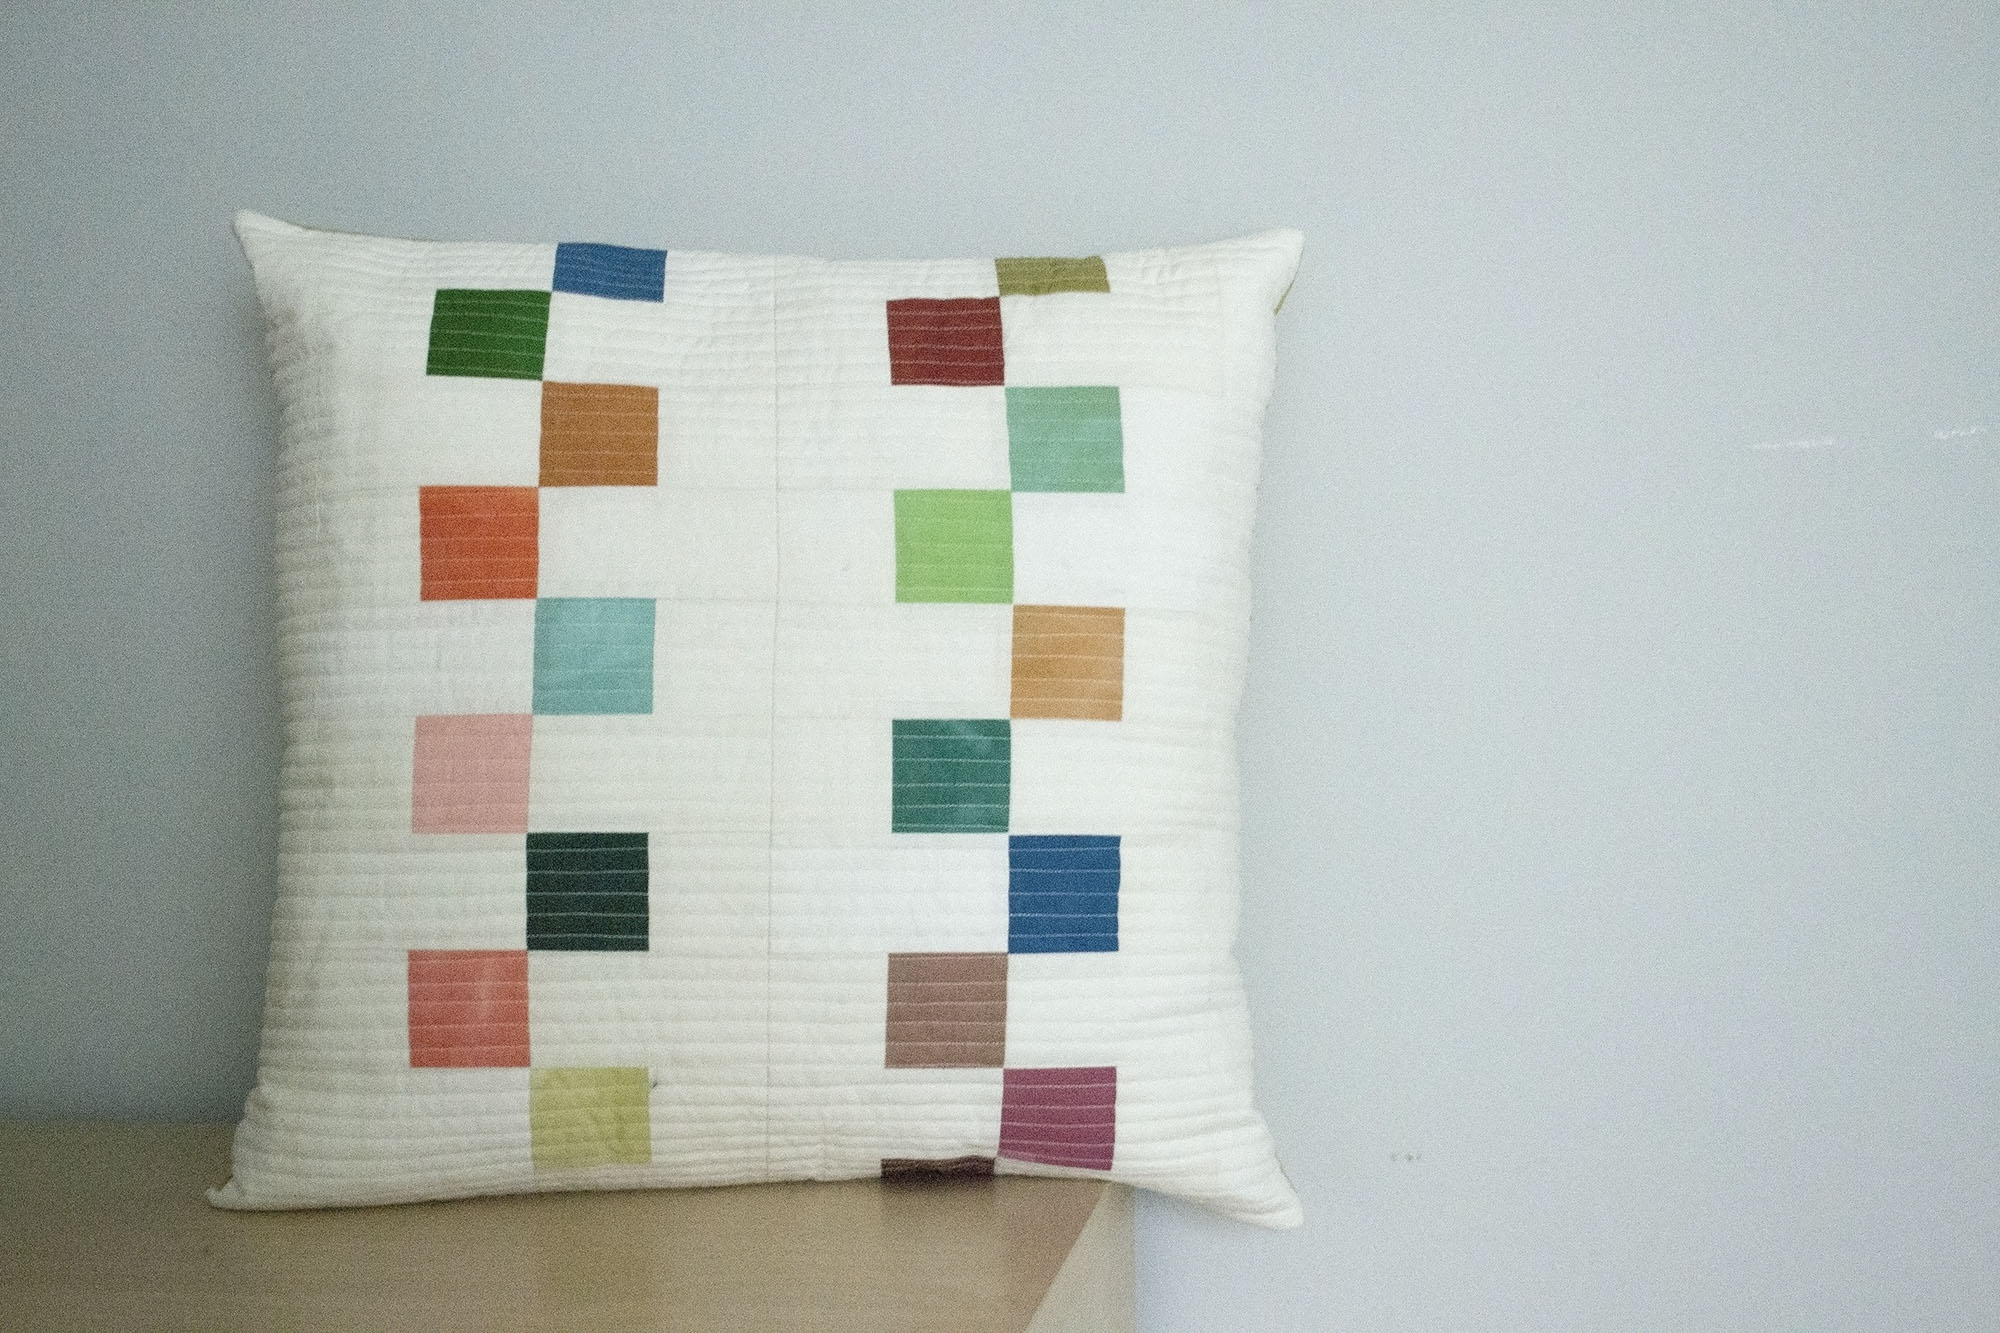 swatch pillow resized.jpg